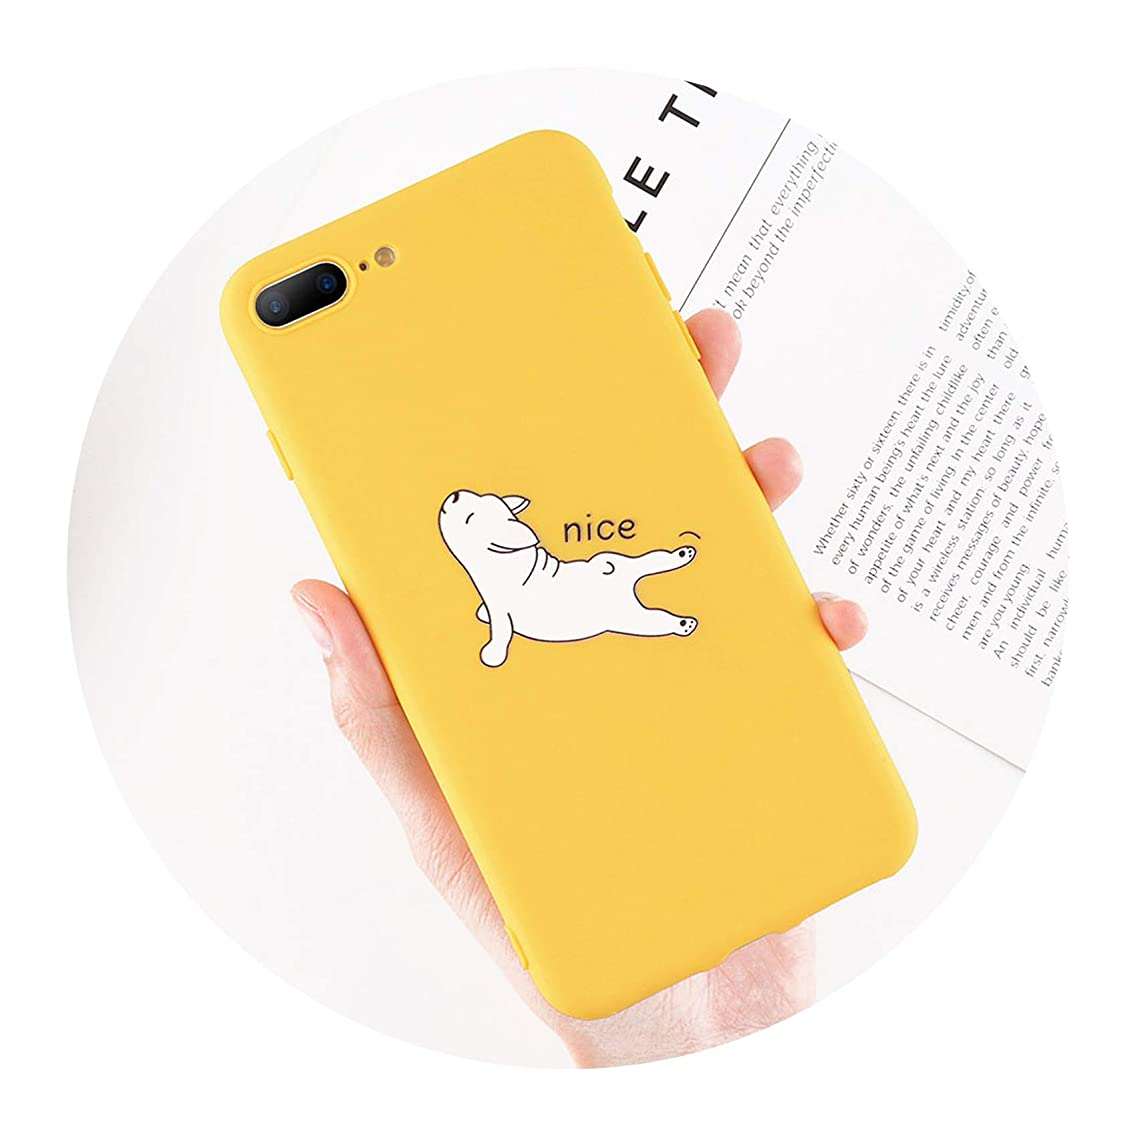 Funny Cartoon Giraffe Phone Case for iPhone 7 8 Plus TPU Silicone Back Cover for iPhone X XR XS Max 6 6S Plus Soft Cases,AC1791,for iPhone 8 Plus